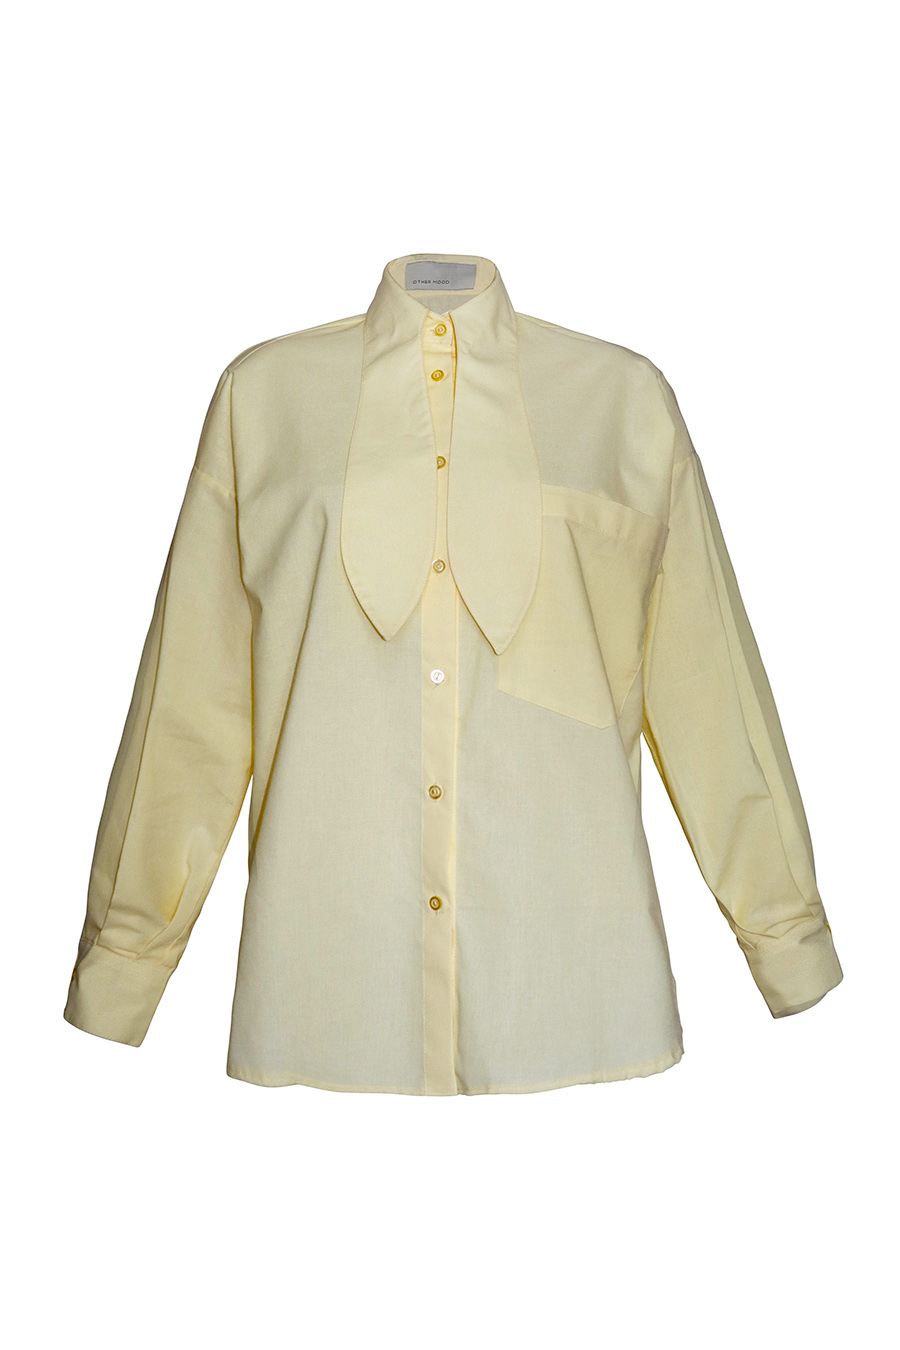 OM Shirt With Bow Tie Collar - Yellow